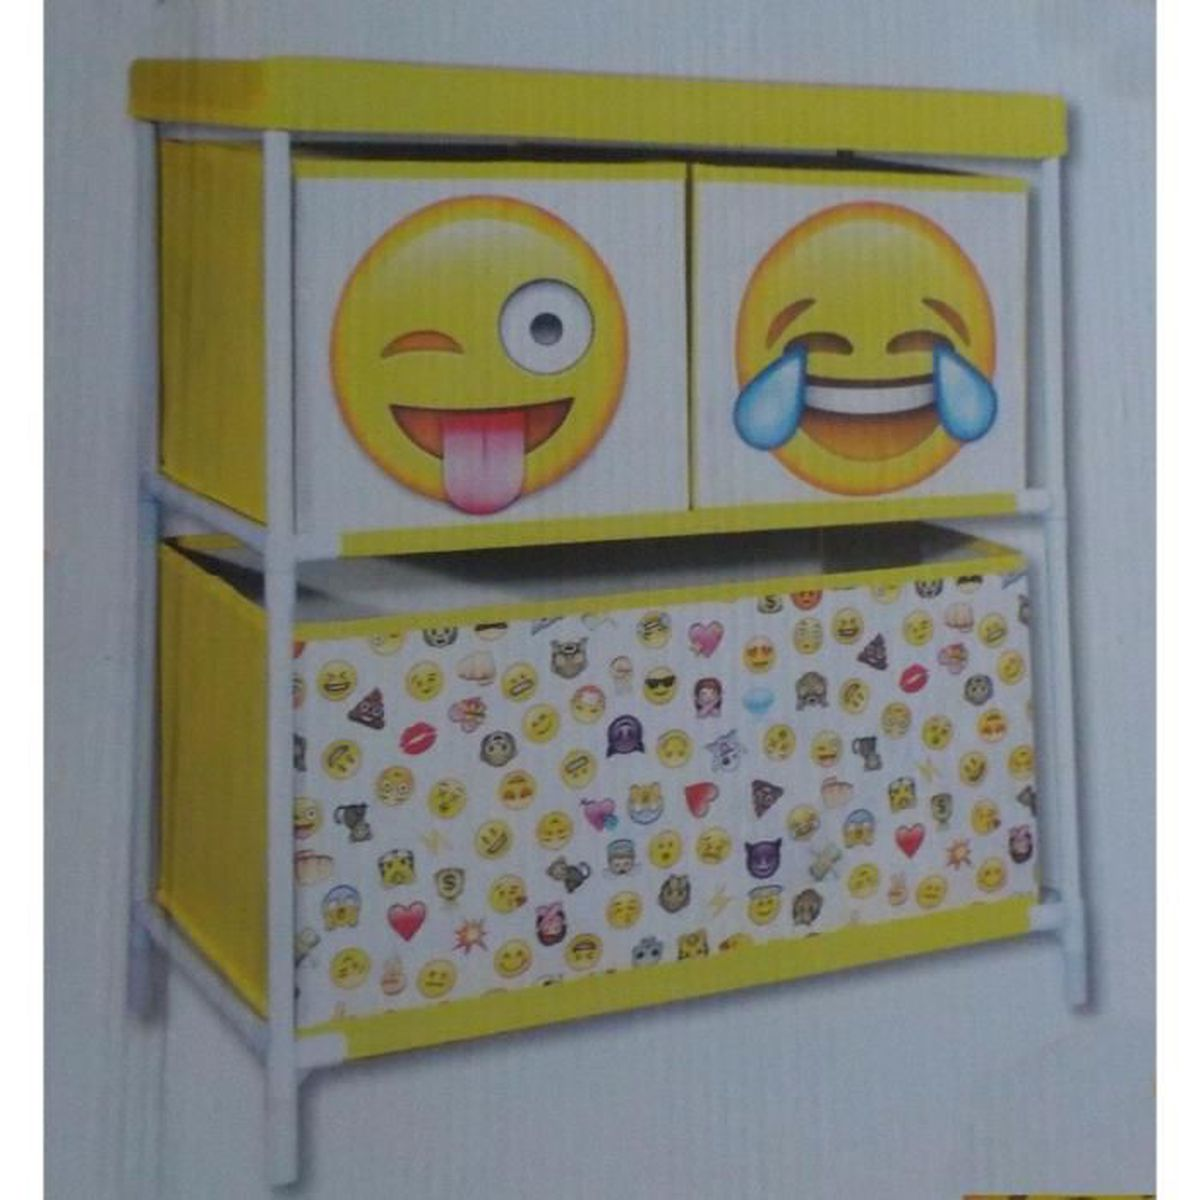 commode meuble de rangement pour jouet ou vetement decoration smiley emoticones jeu enfant. Black Bedroom Furniture Sets. Home Design Ideas